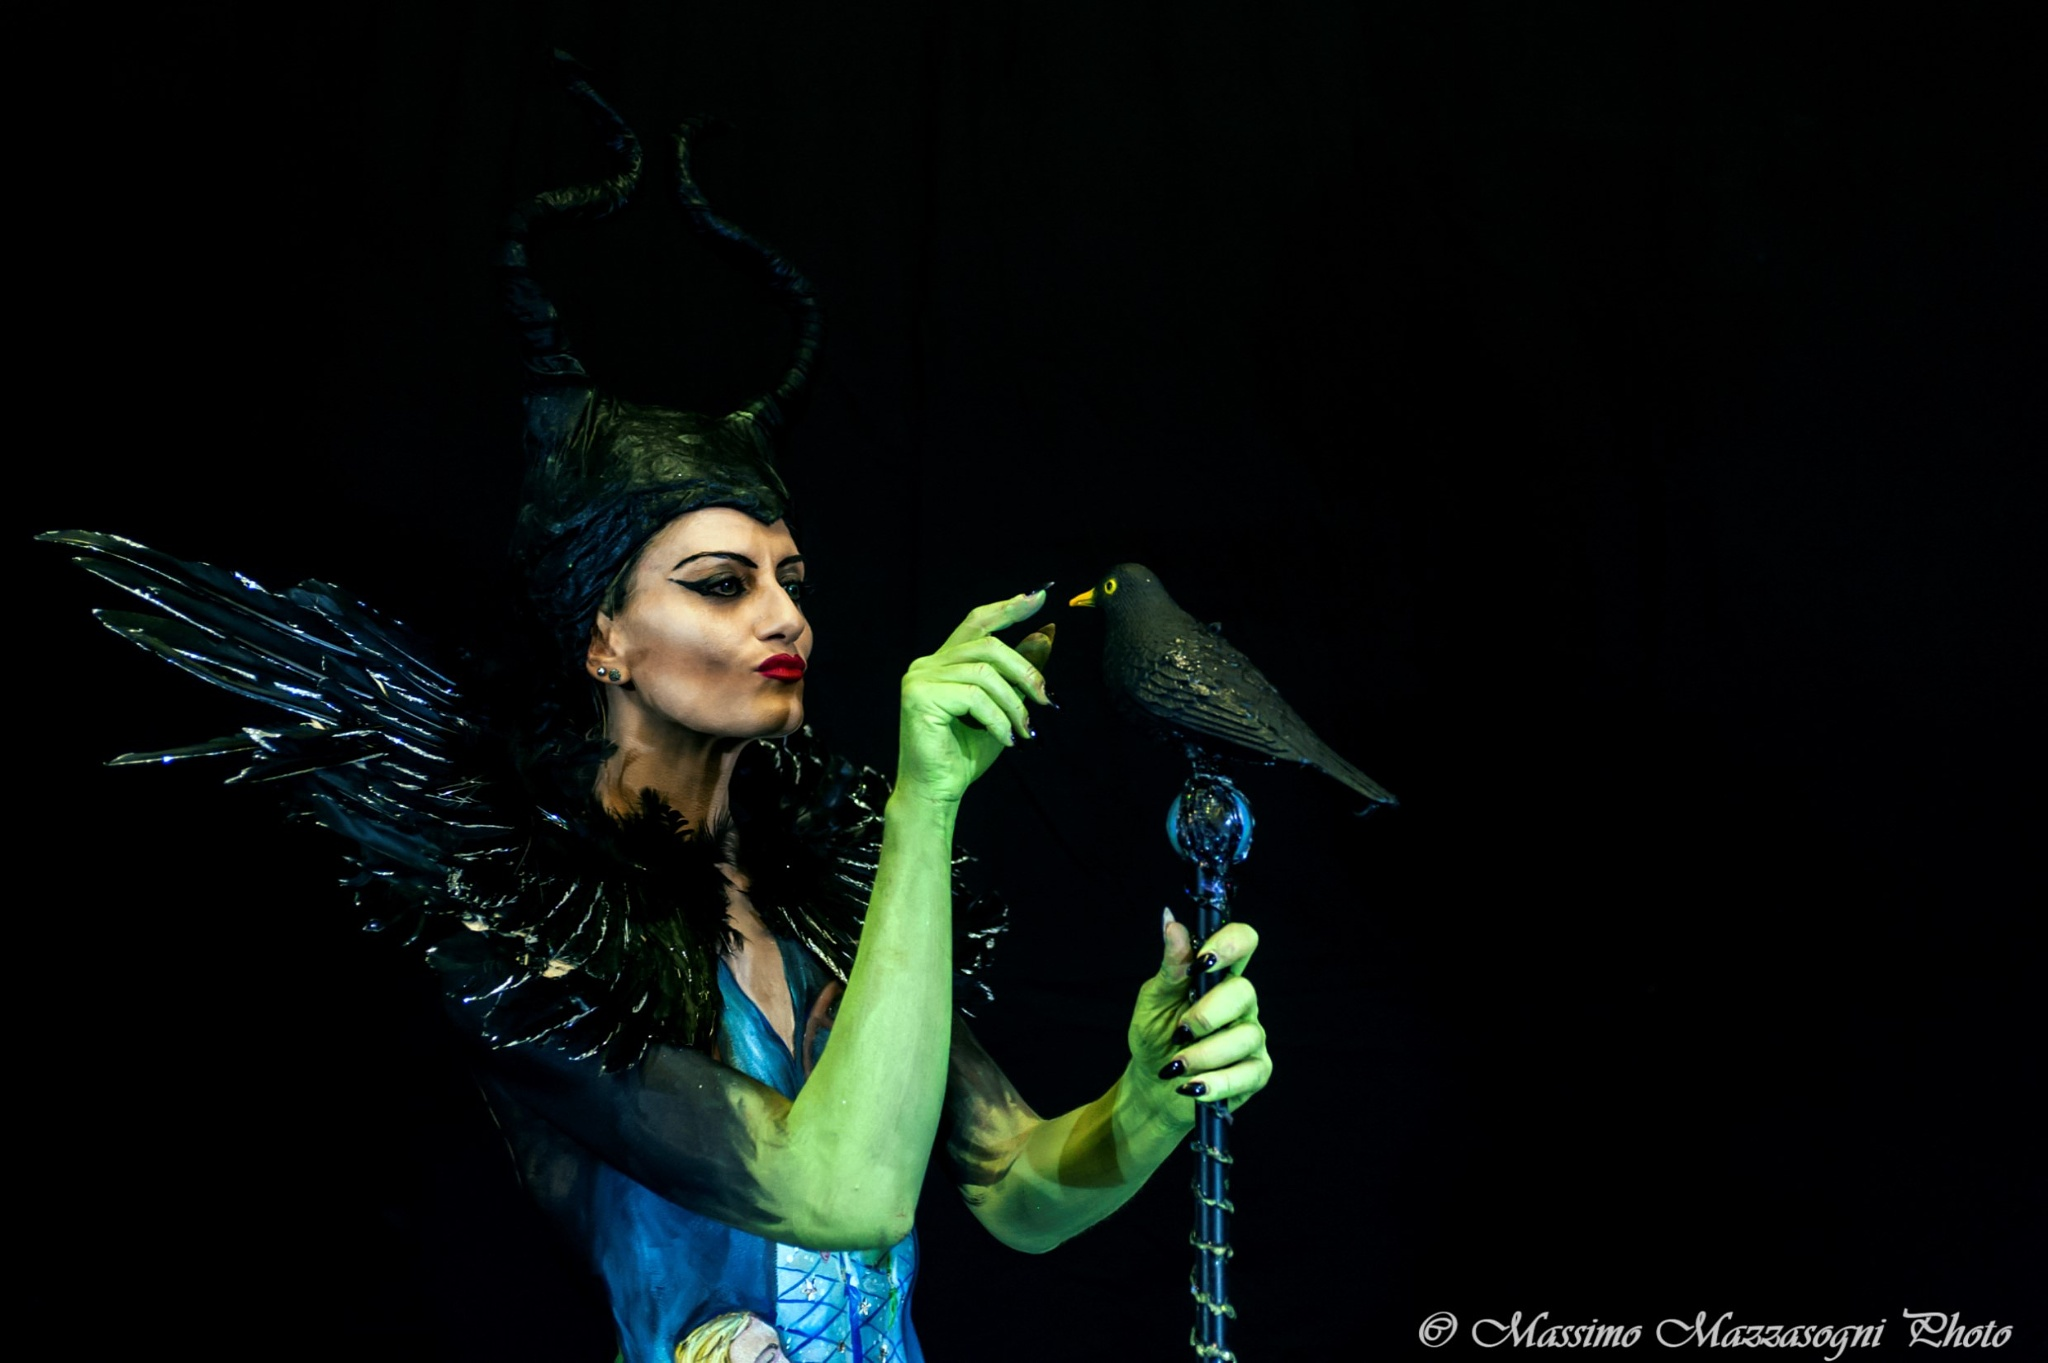 The wicked witch by Massimo Mazzasogni